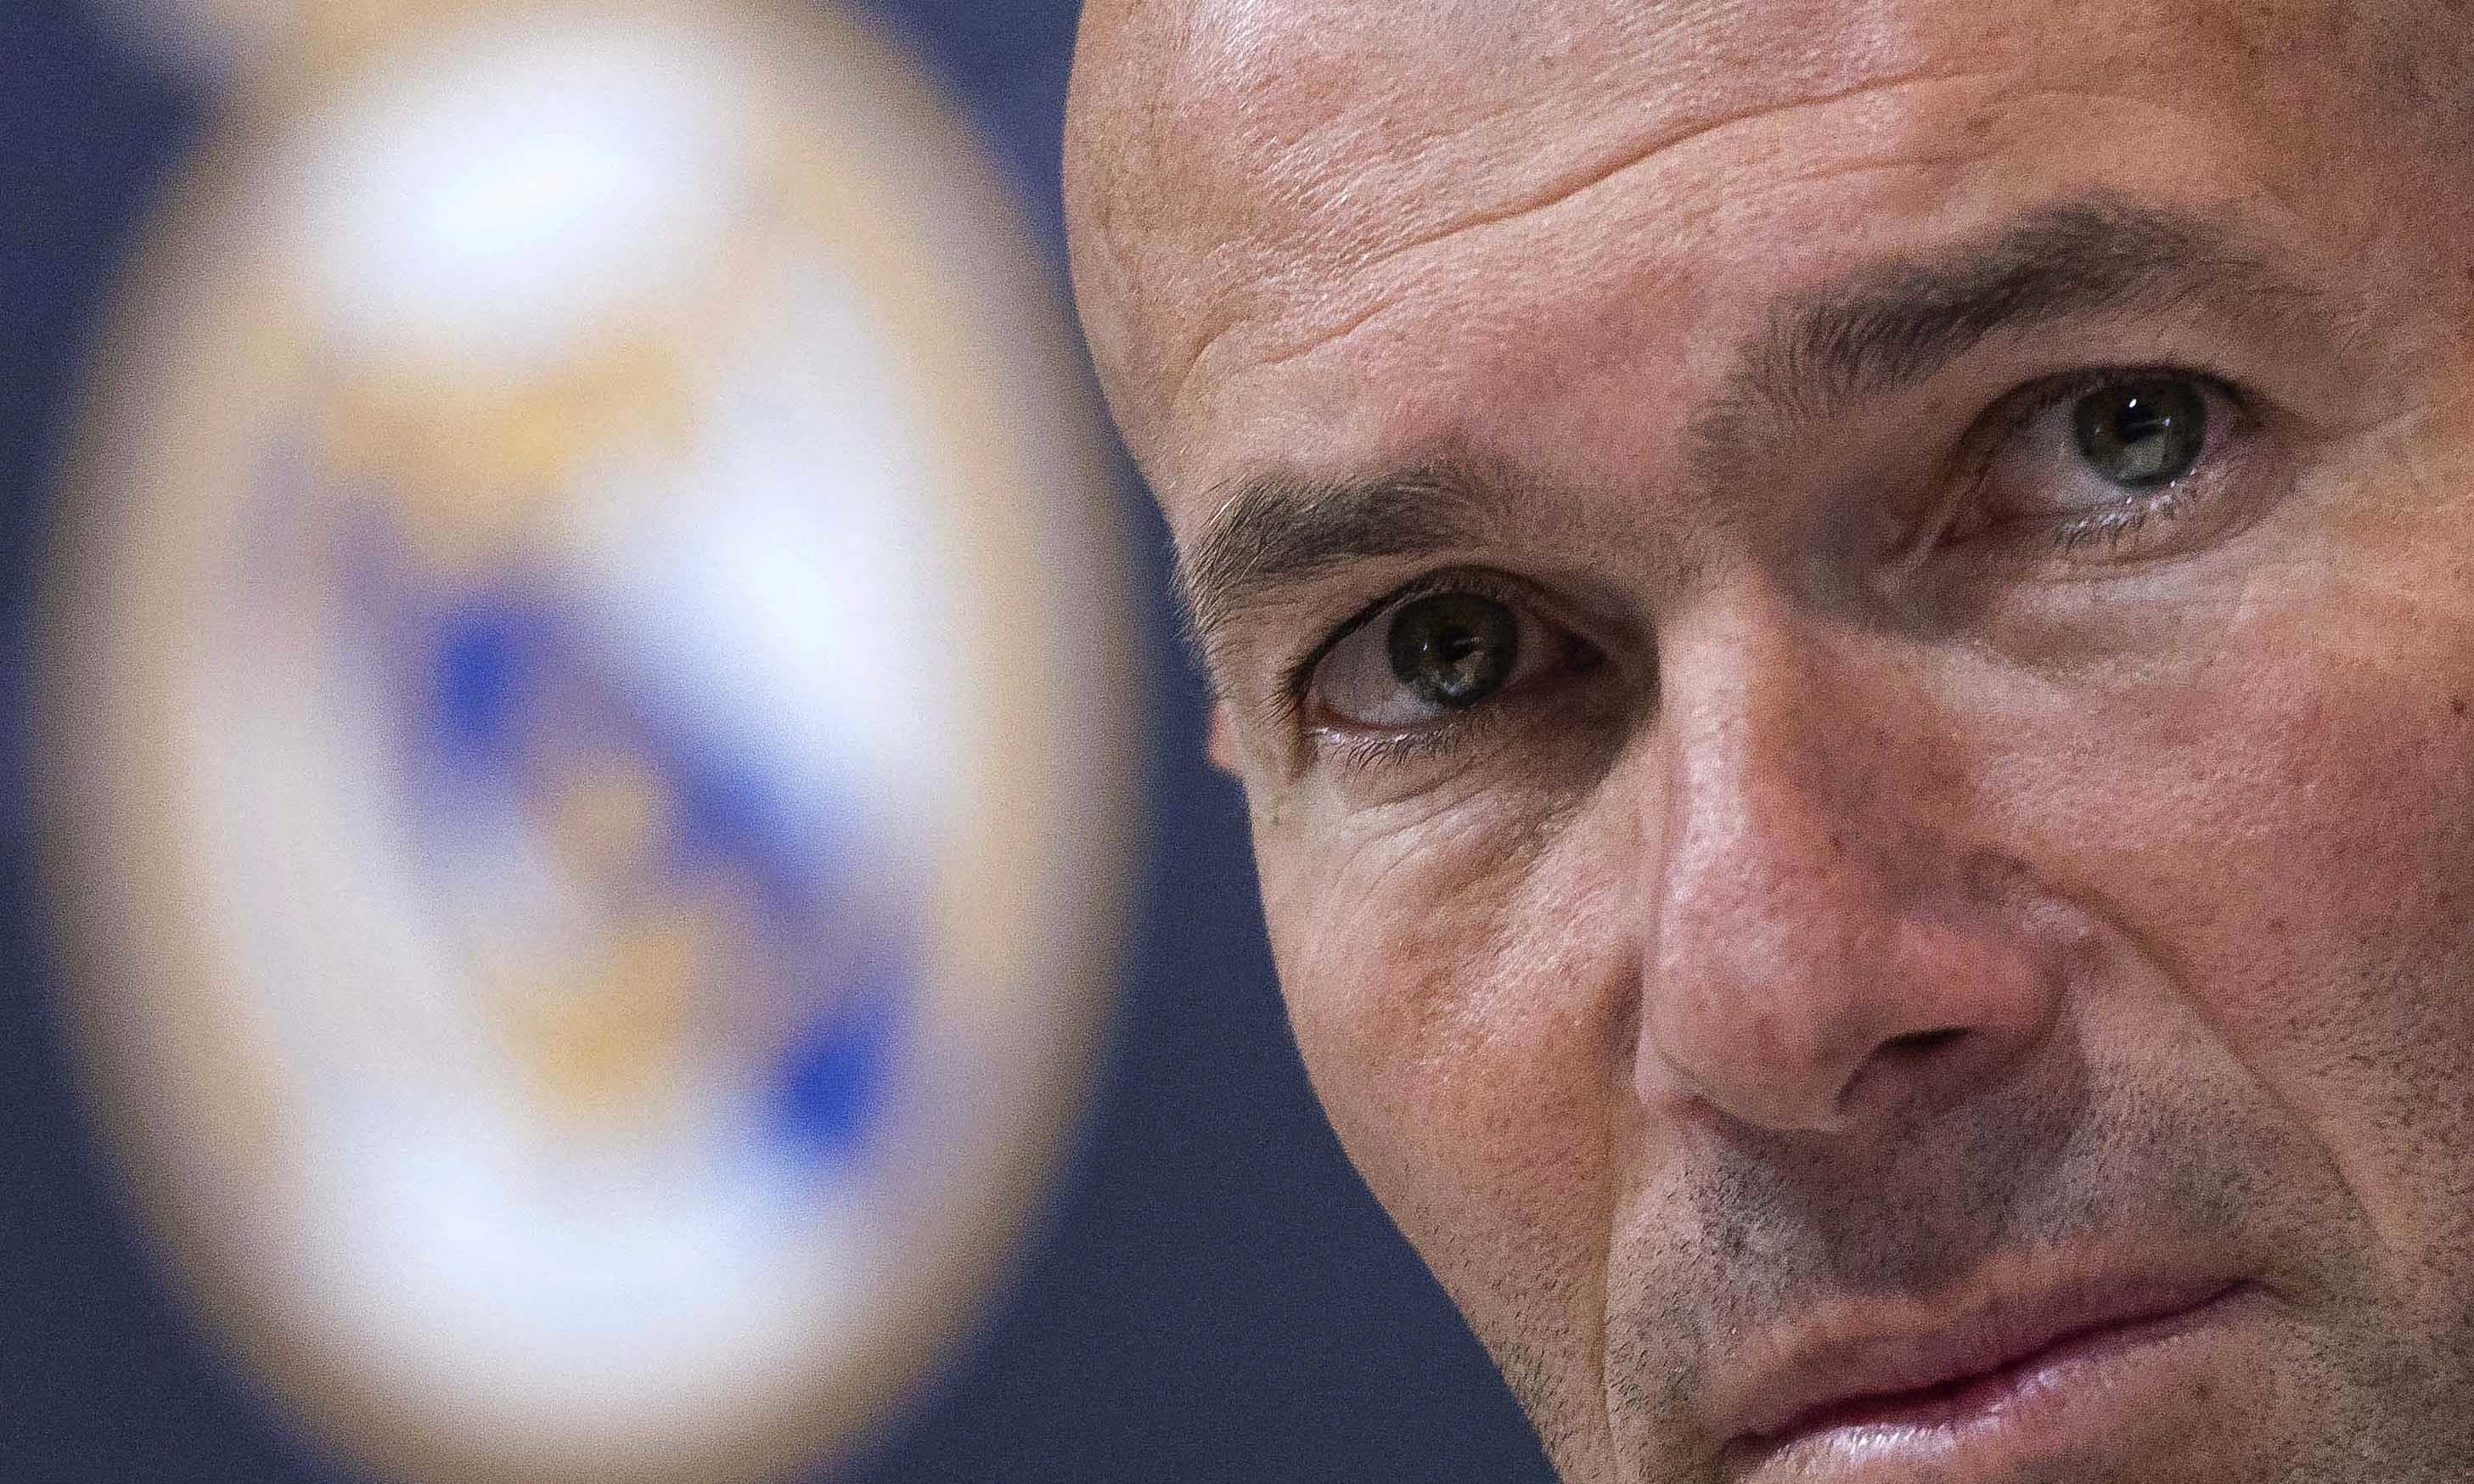 In this file photo, Zinedine Zidane listens to the questions of journalists during a press conference in Madrid. — AP